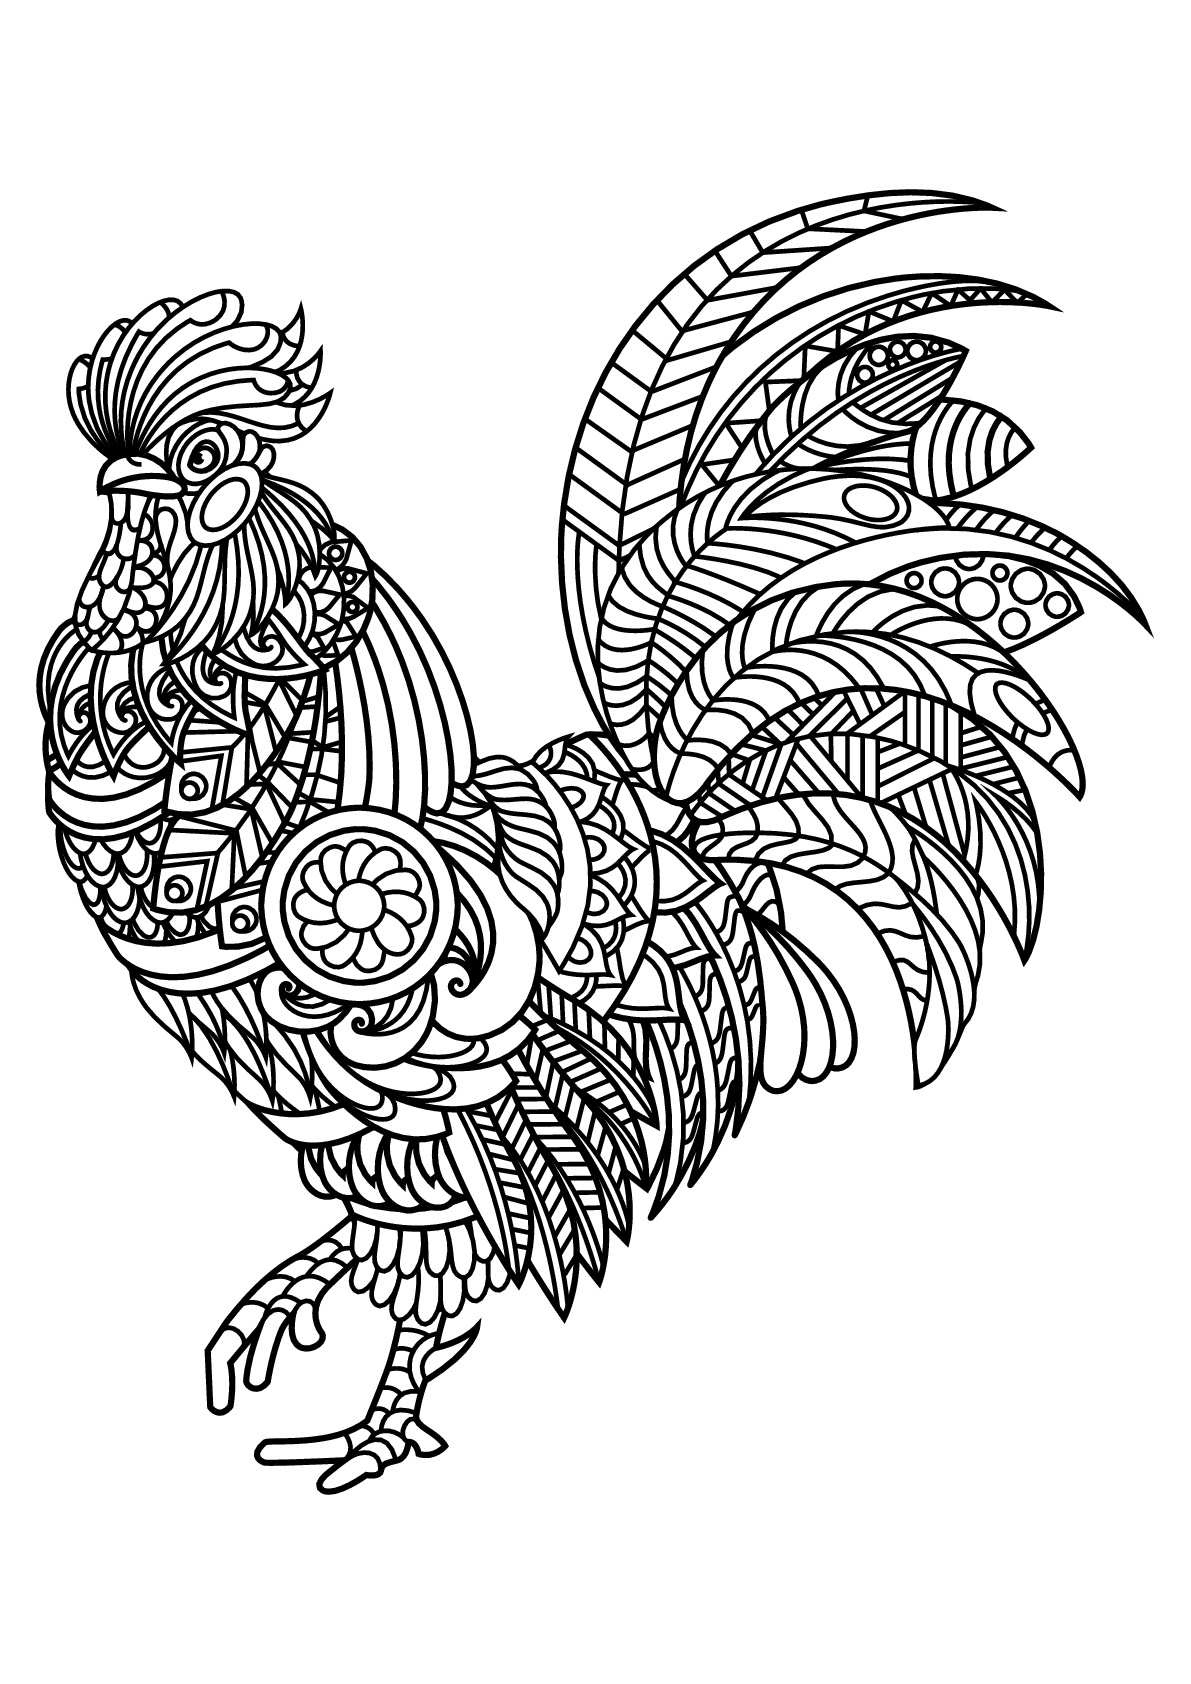 Birds coloring page to print and color